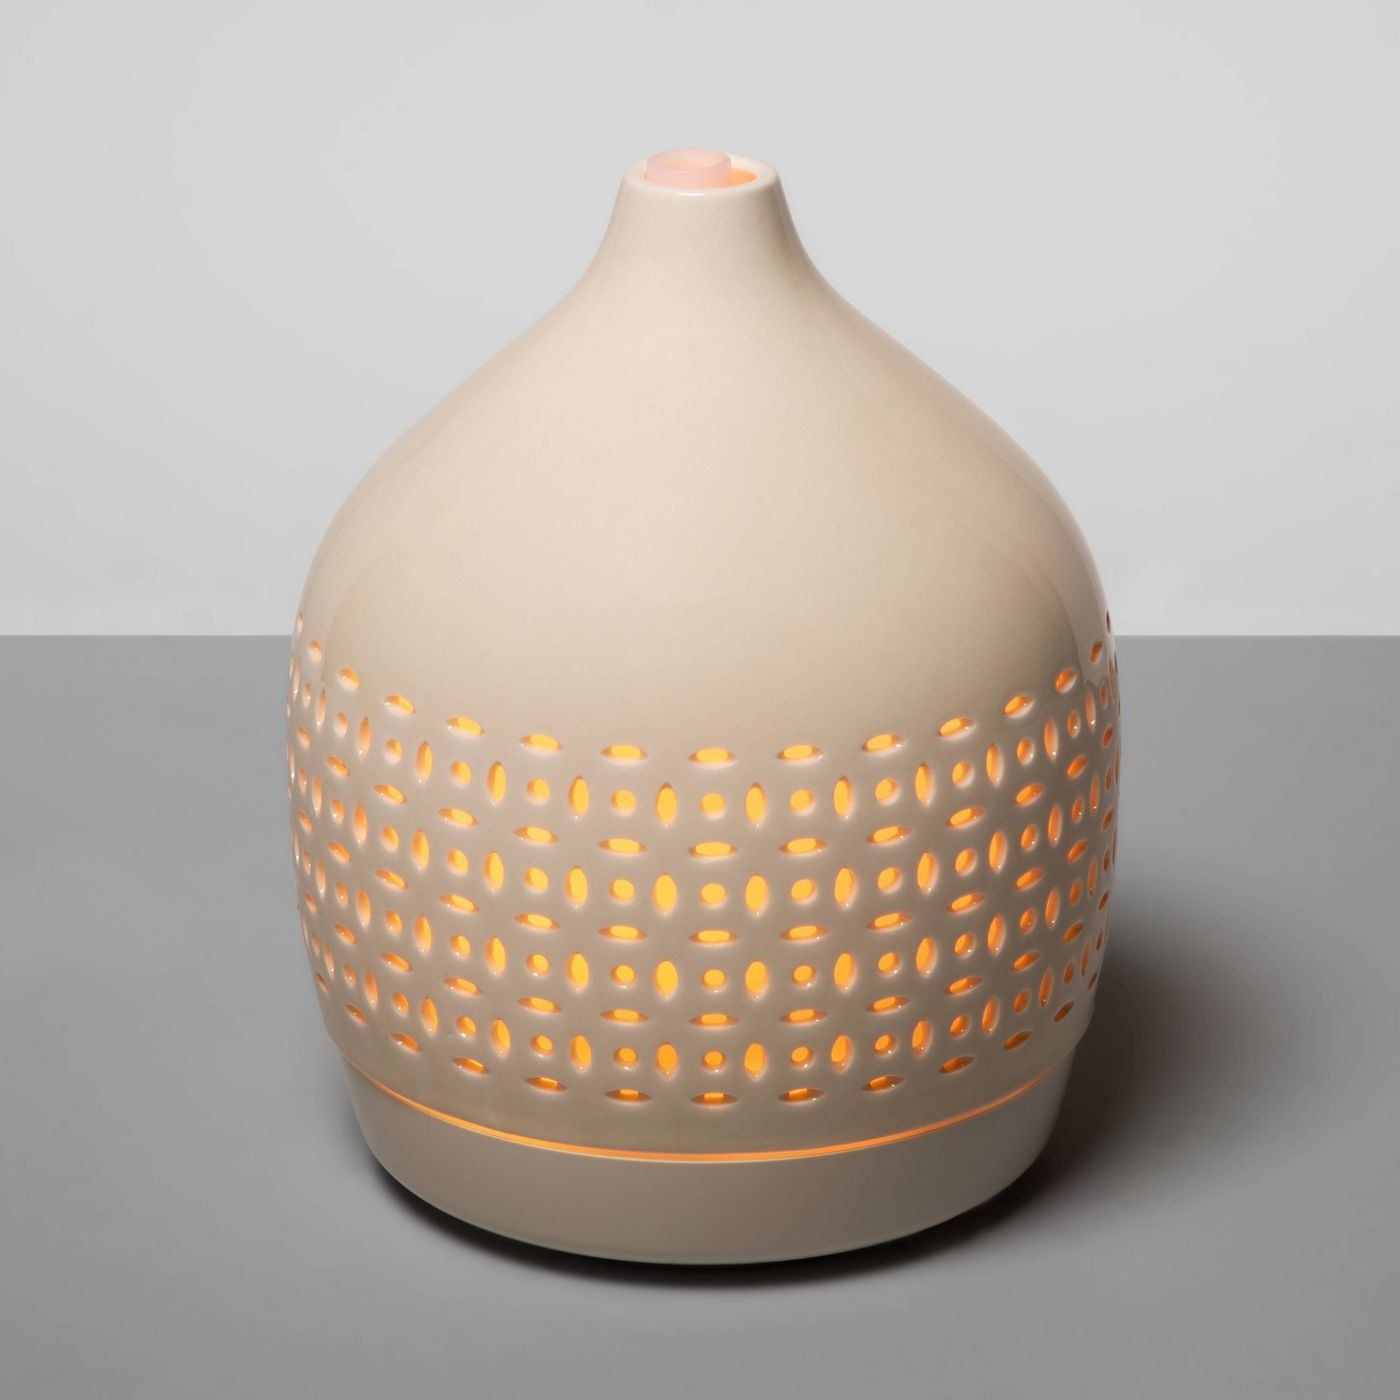 The essential oil diffuser glowing orange